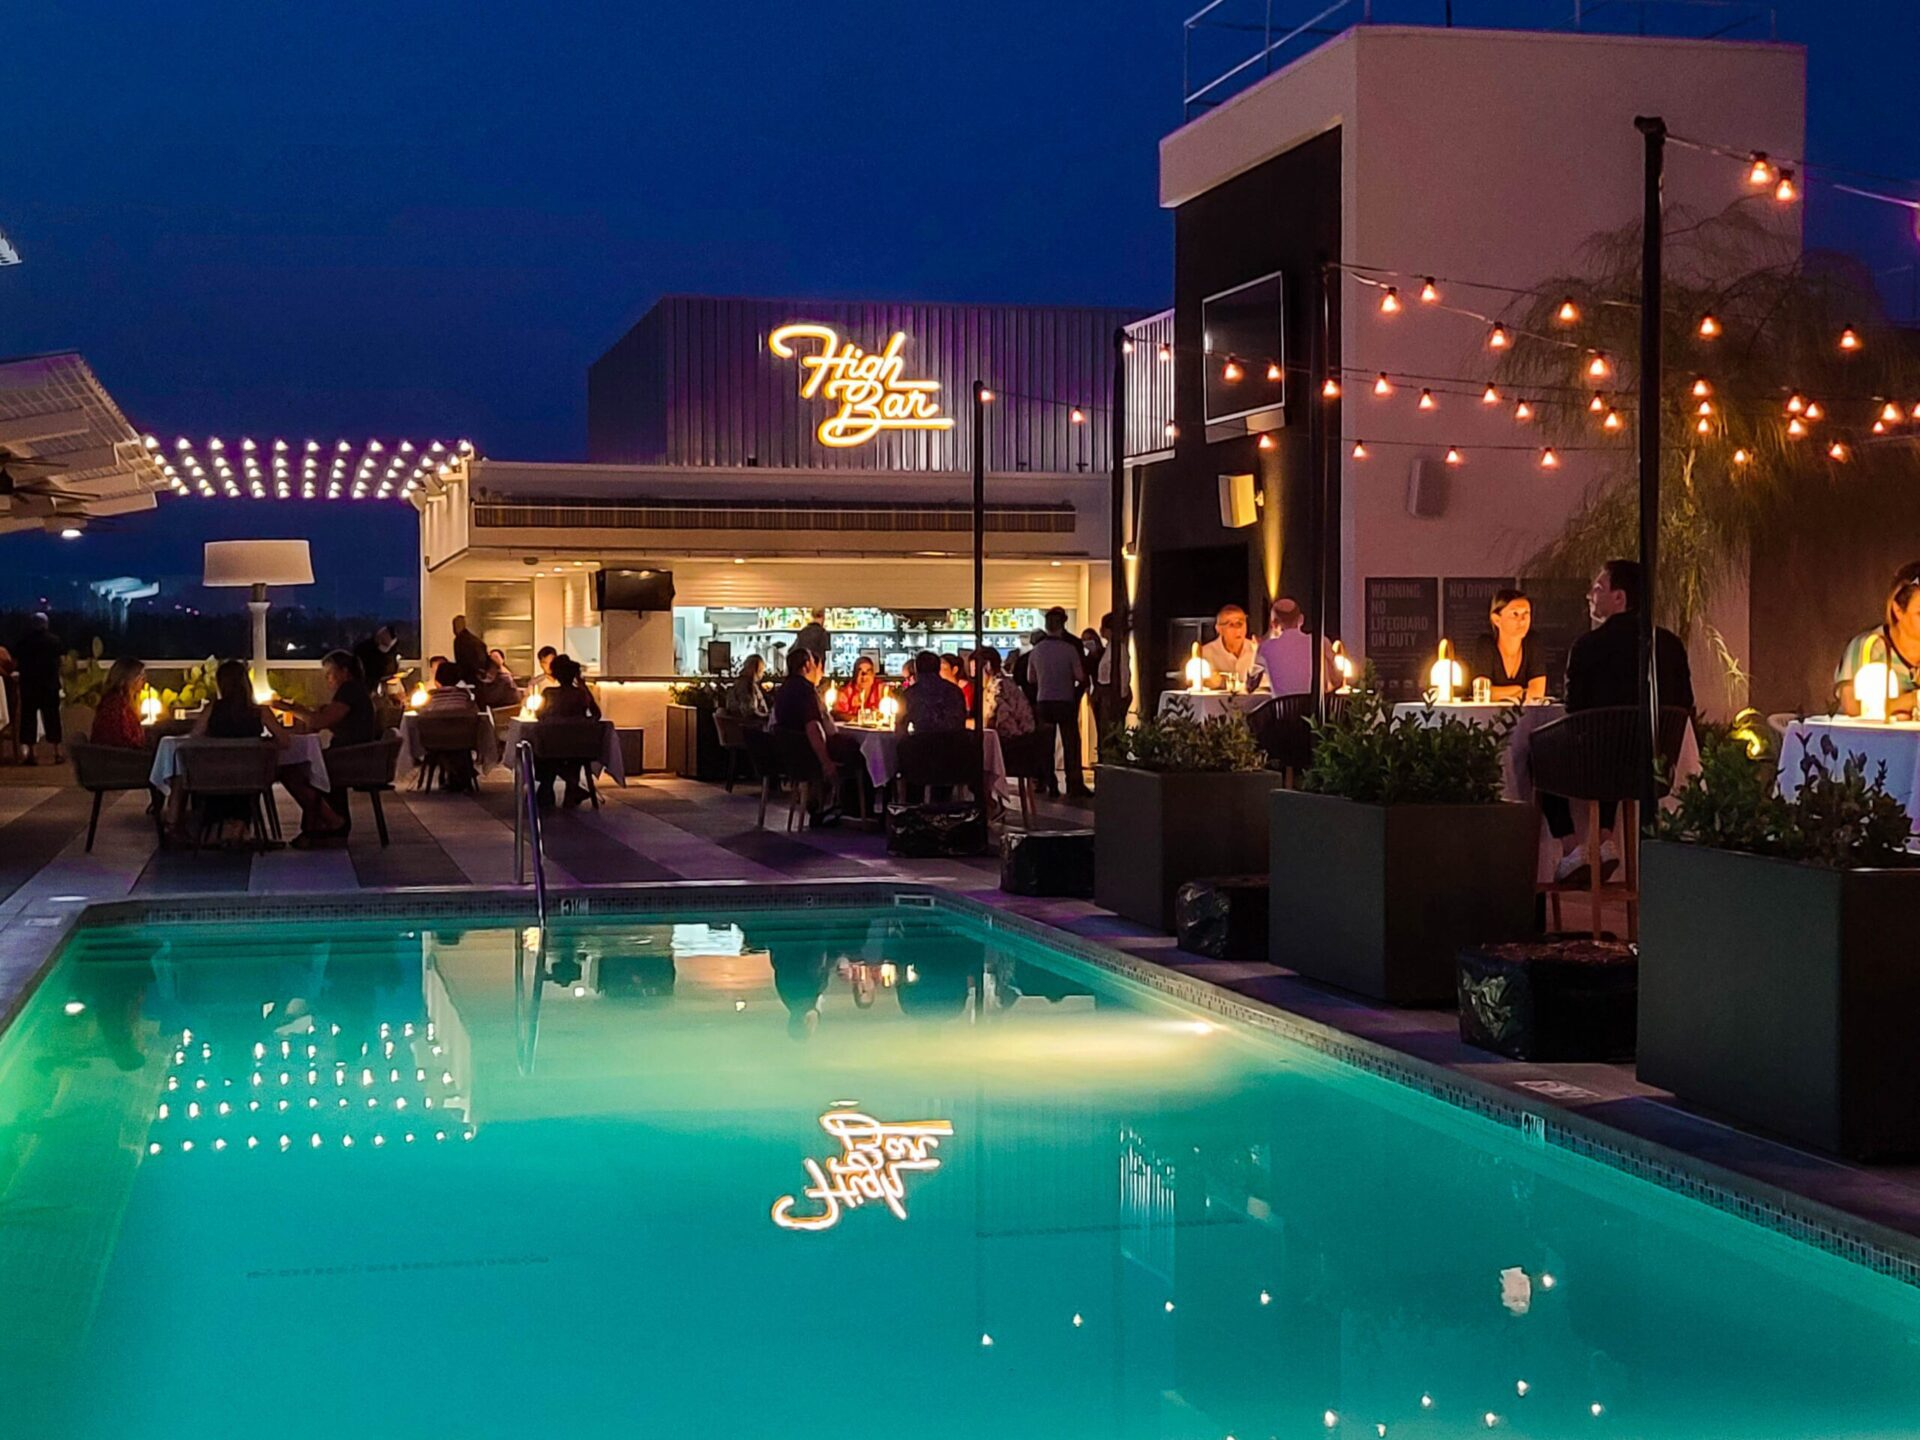 High Bar at the Kimpton Hotel in Palm Springs